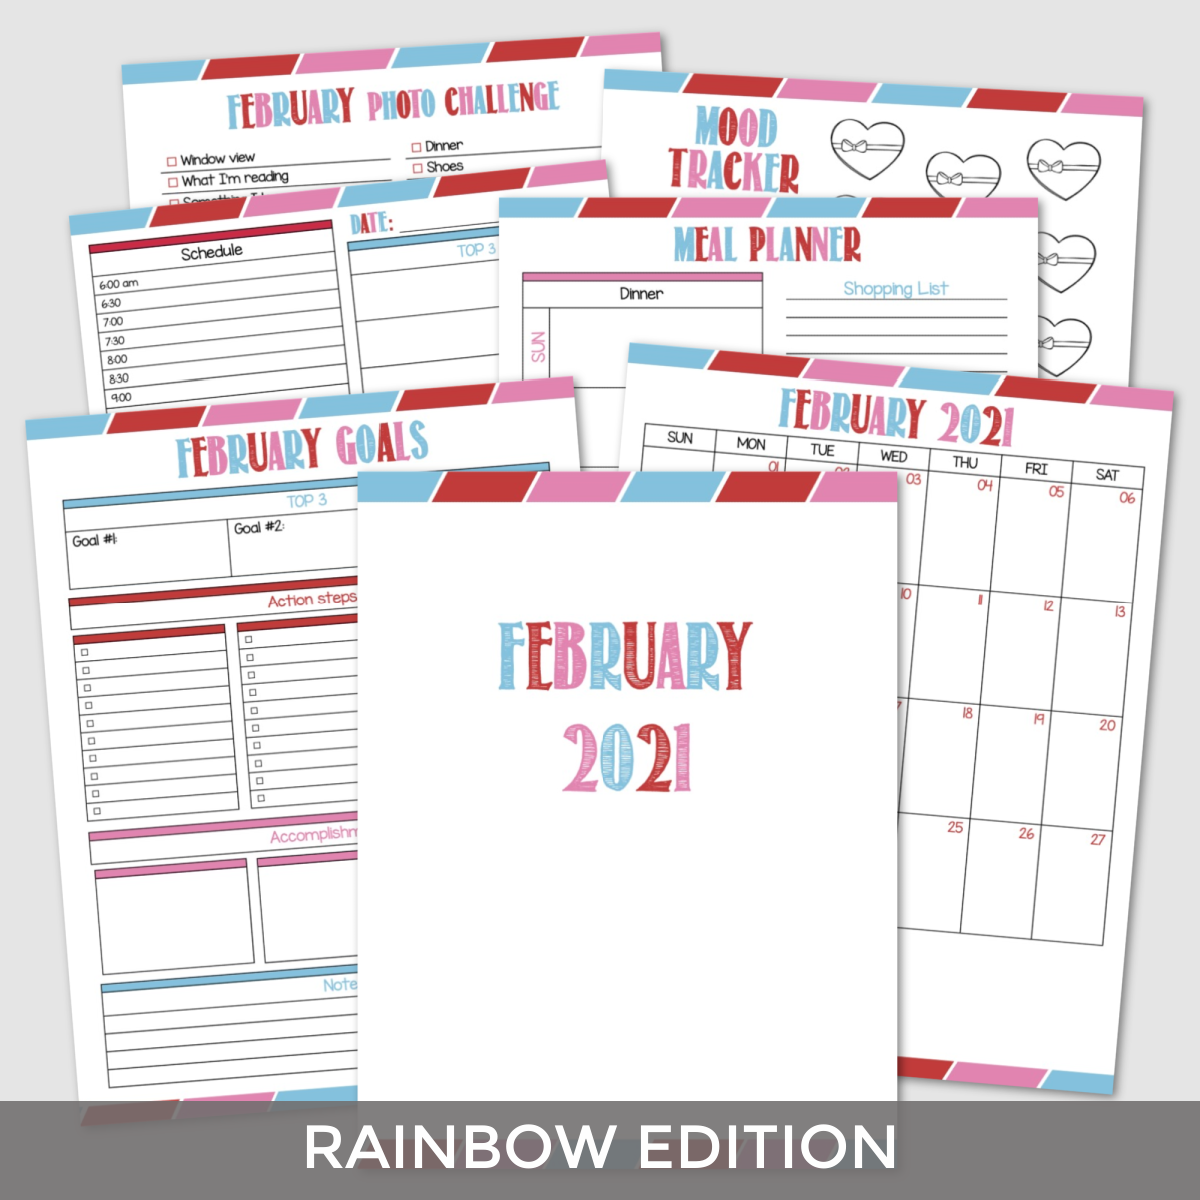 Rainbow Edition - KPS February 2021